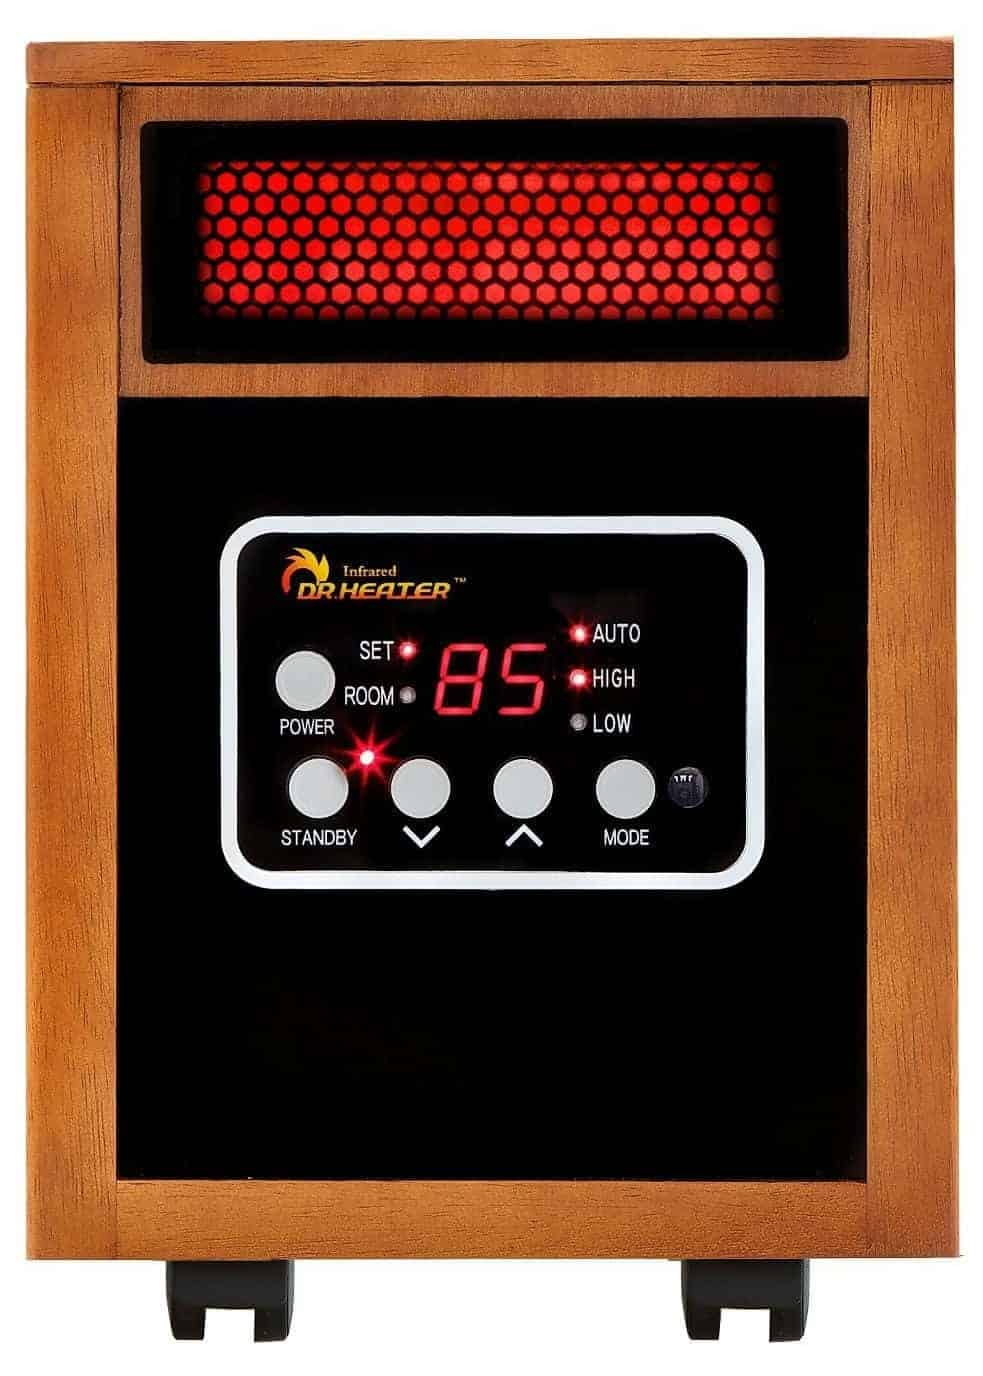 Dr Infrared Heater Portable Infrared Heater, 1500-Watt